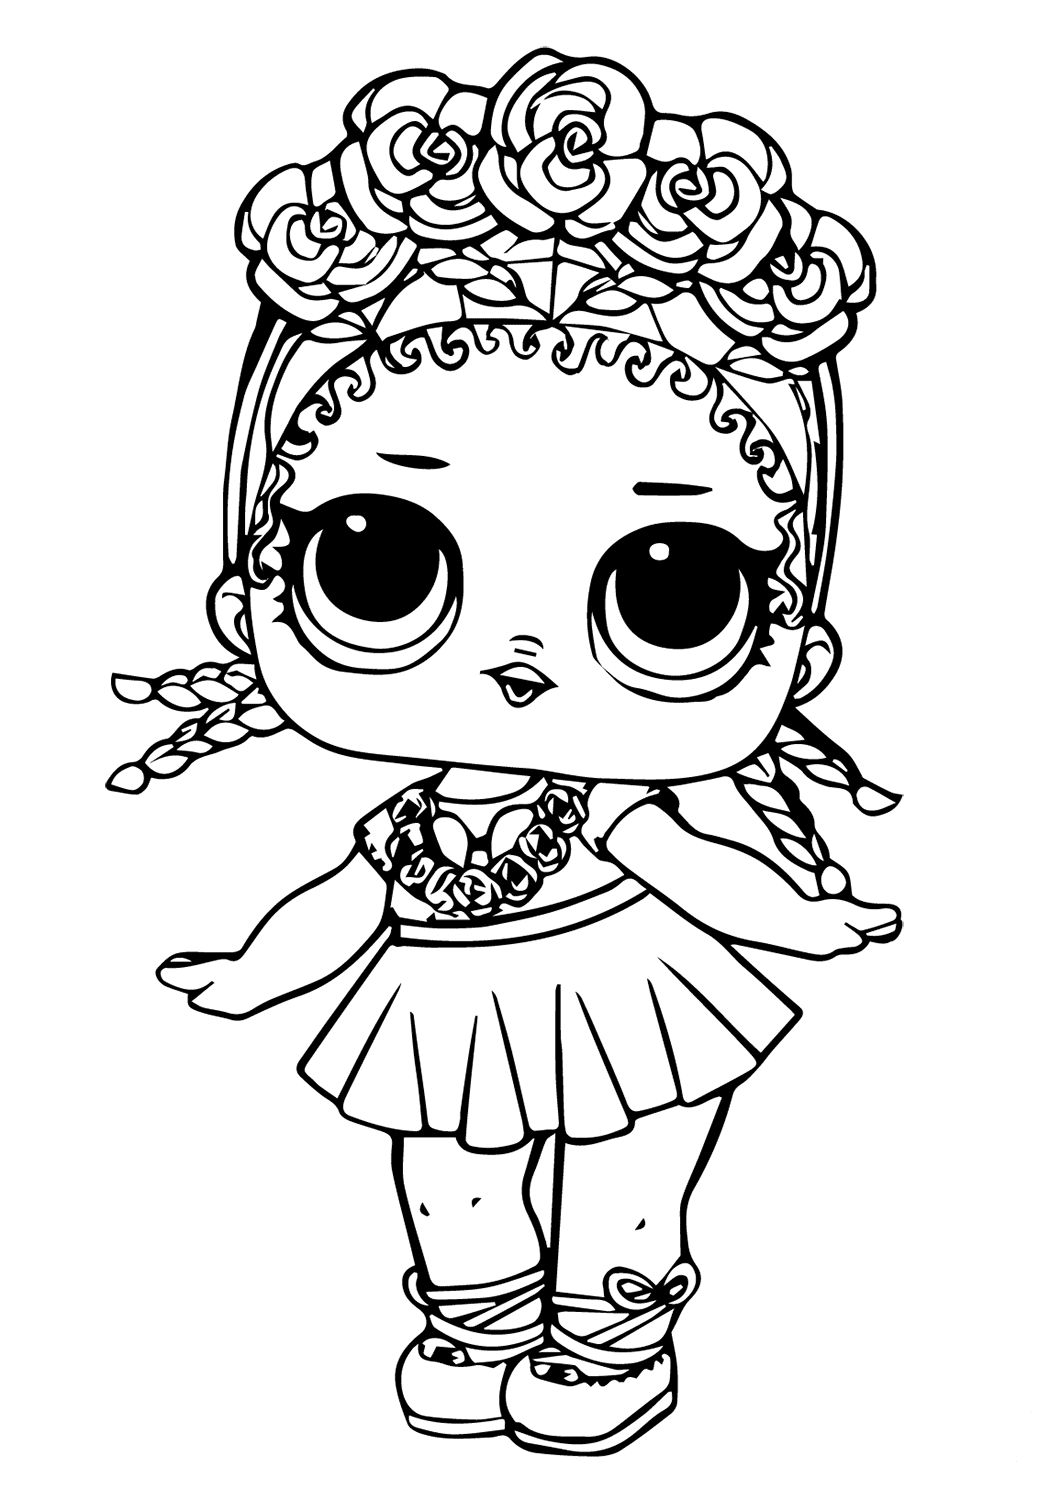 coloring images lol lol surprise coloring pages print and colorcom images coloring lol